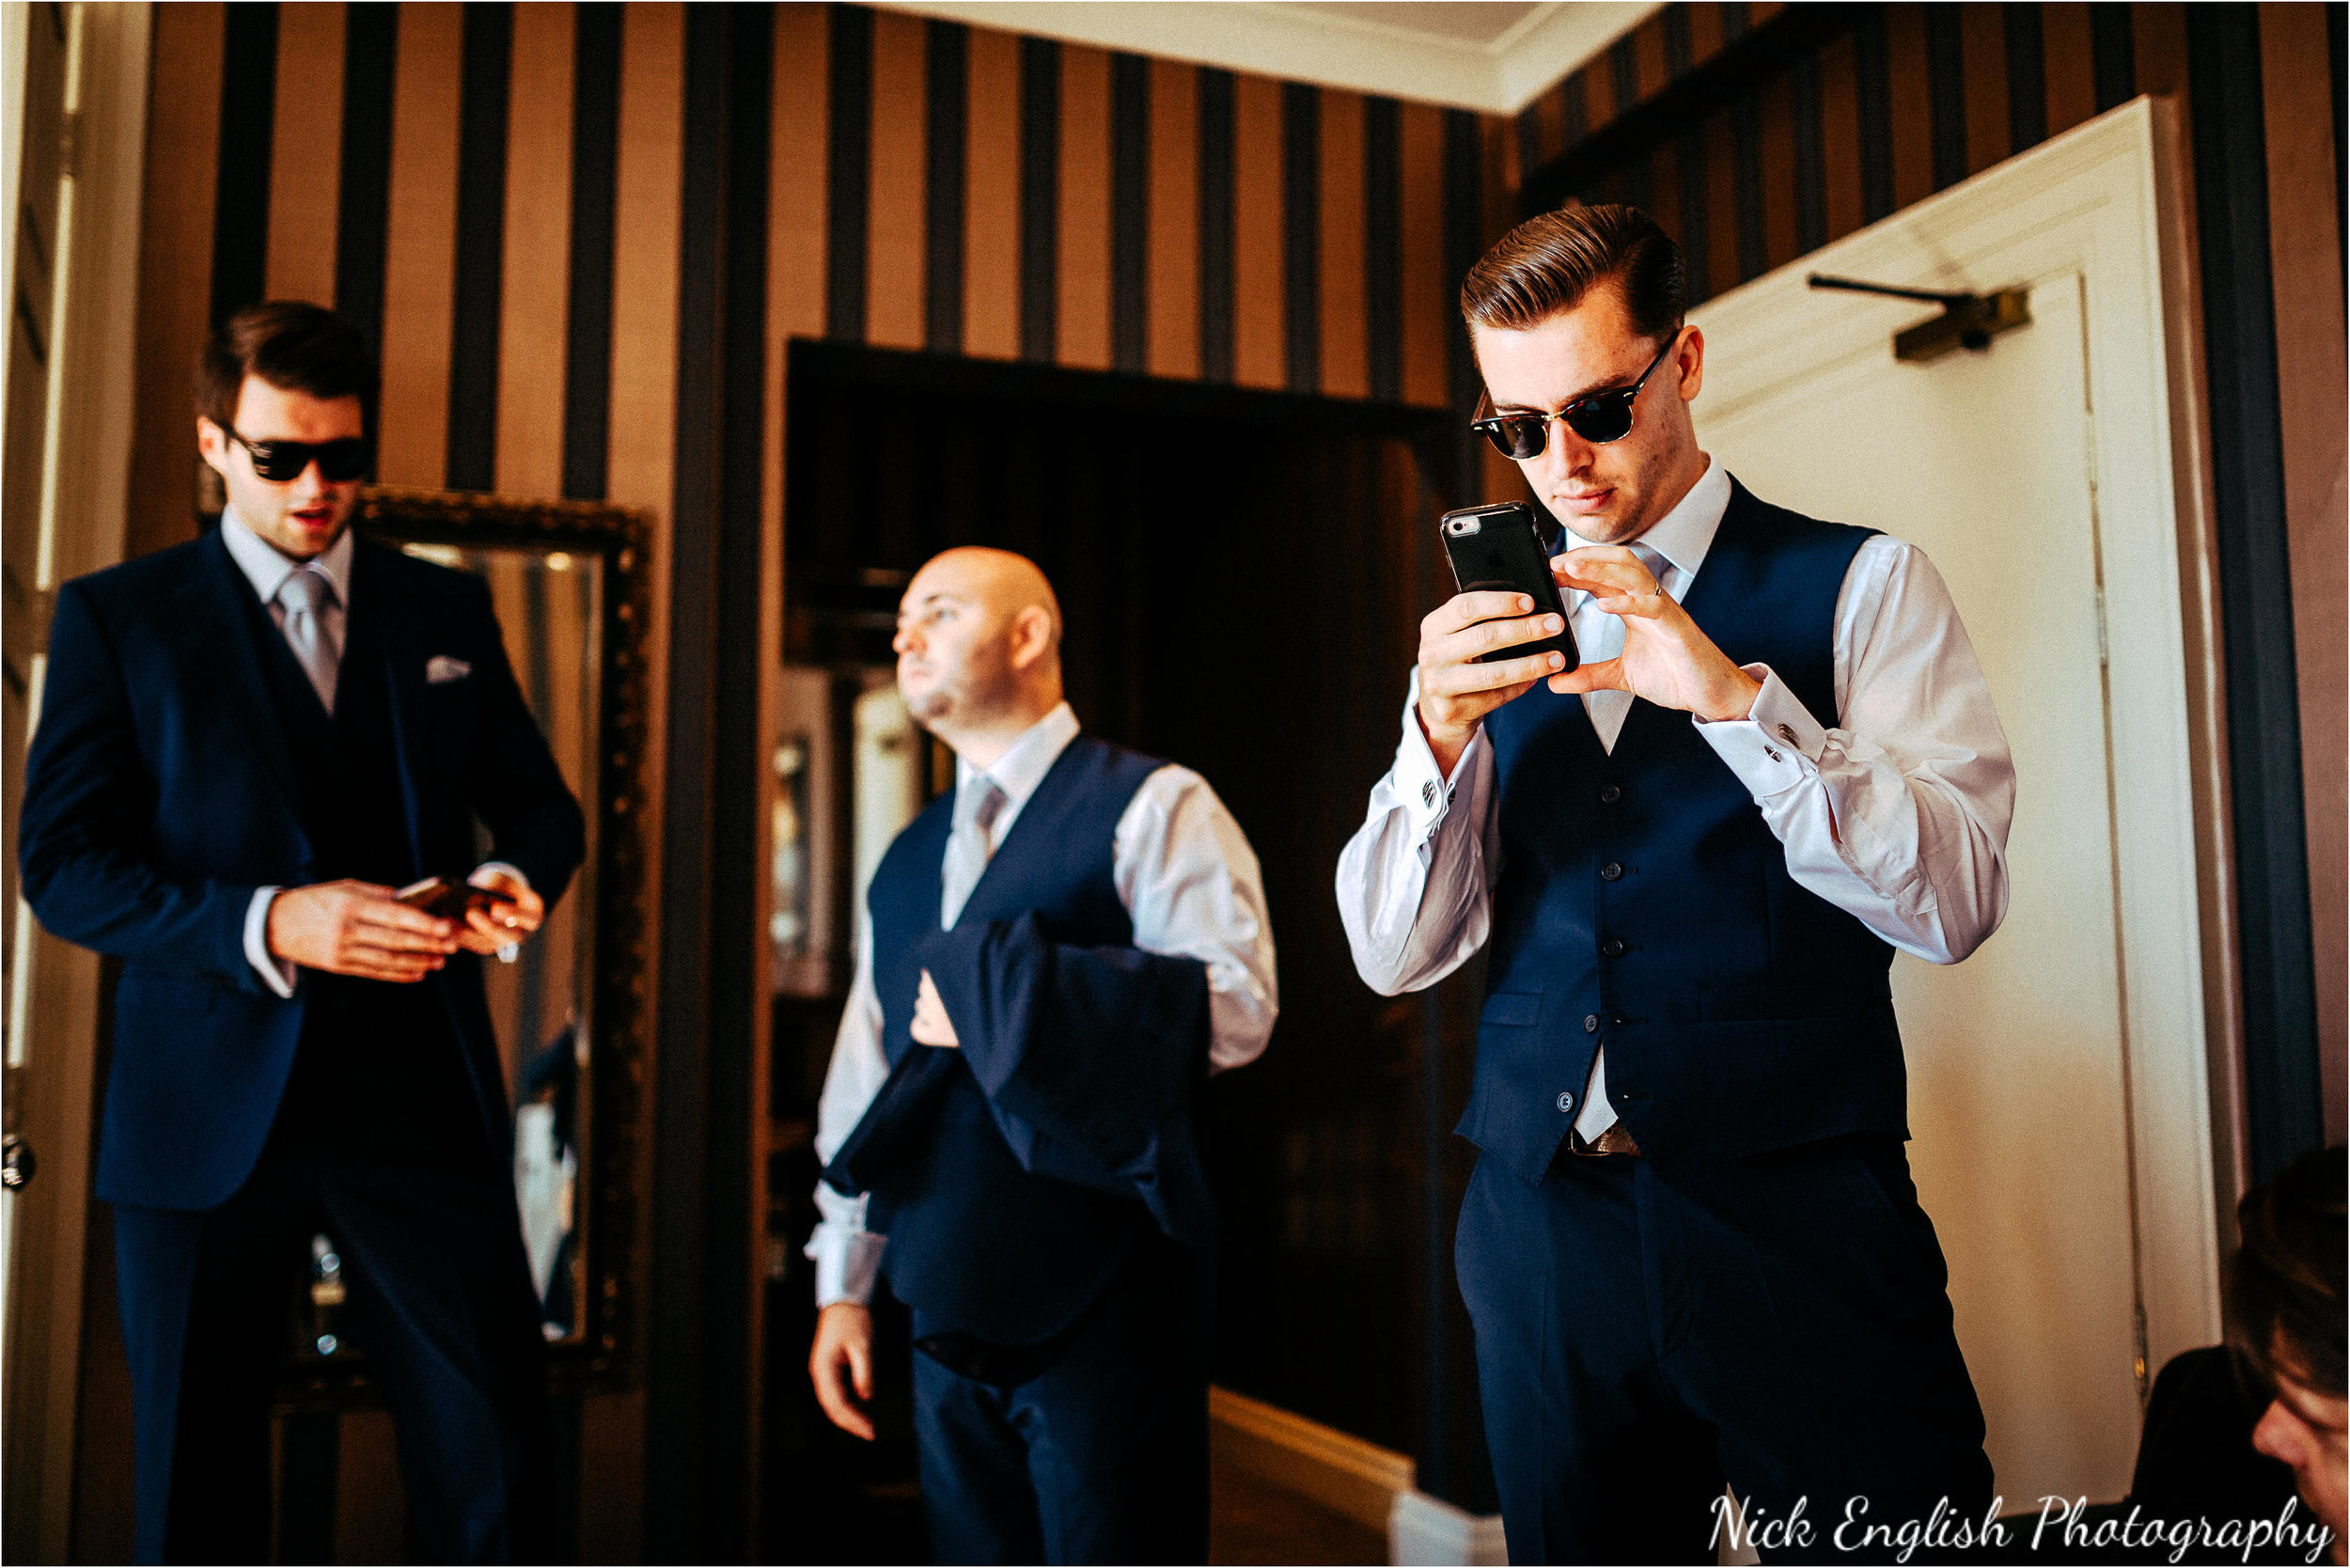 Eaves_Hall_Wedding_Photographs_Nick_English_Photography-44.jpg